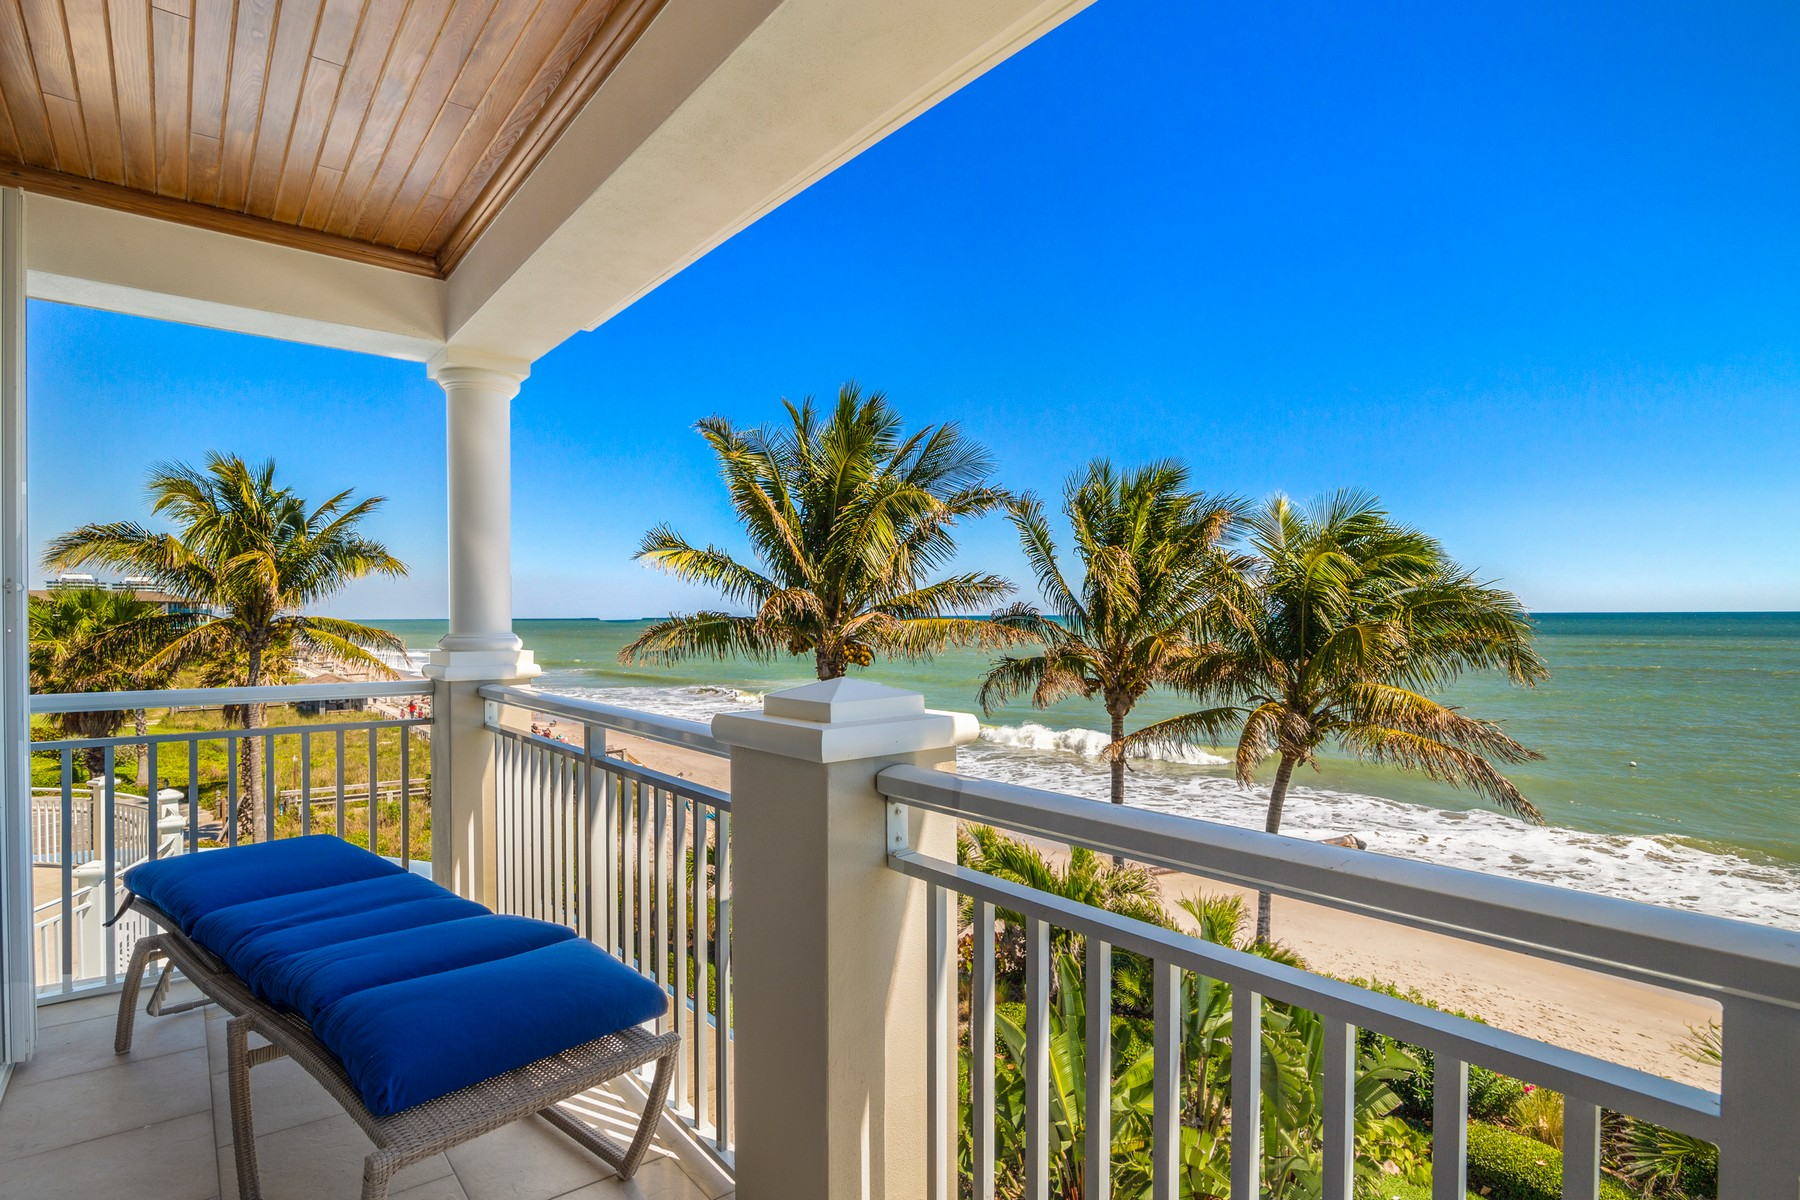 Property para Venda às Elegant Oceanfront Townhome Right in Town 1010 Easter Lily Ln #105 Vero Beach, Florida 32963 Estados Unidos